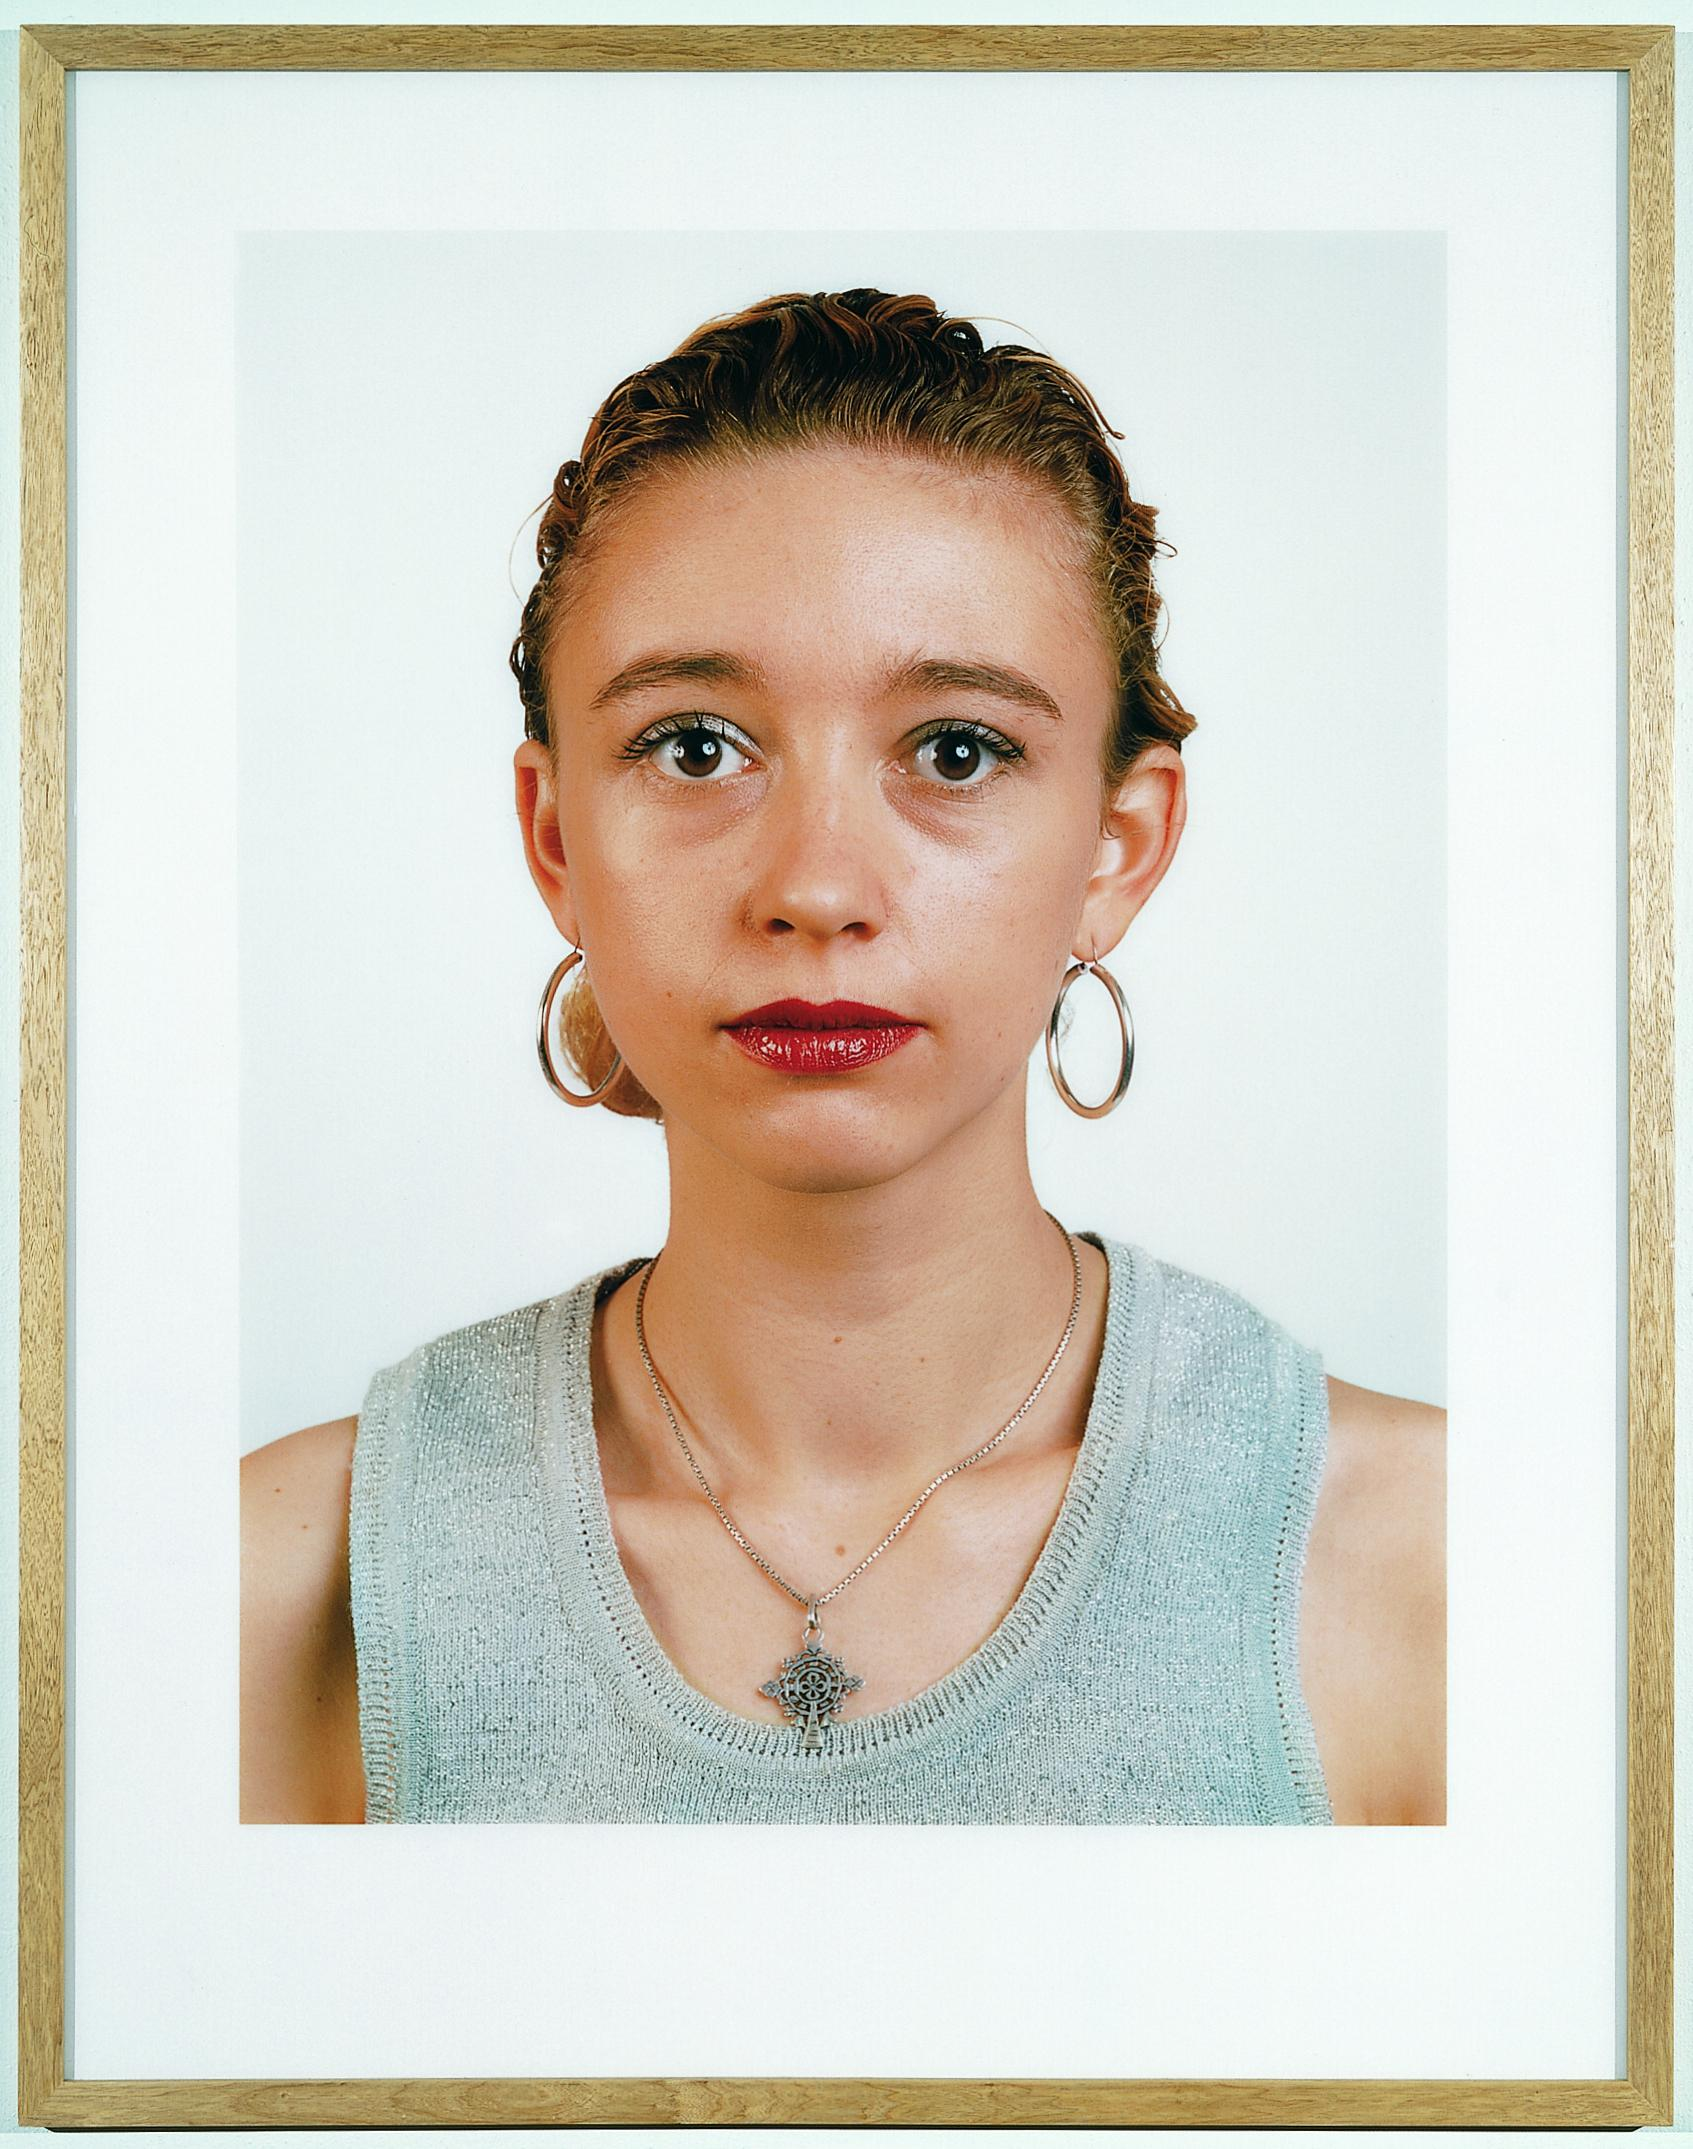 A frontal portrait features a person wearing red lipstick and a grey tank top.